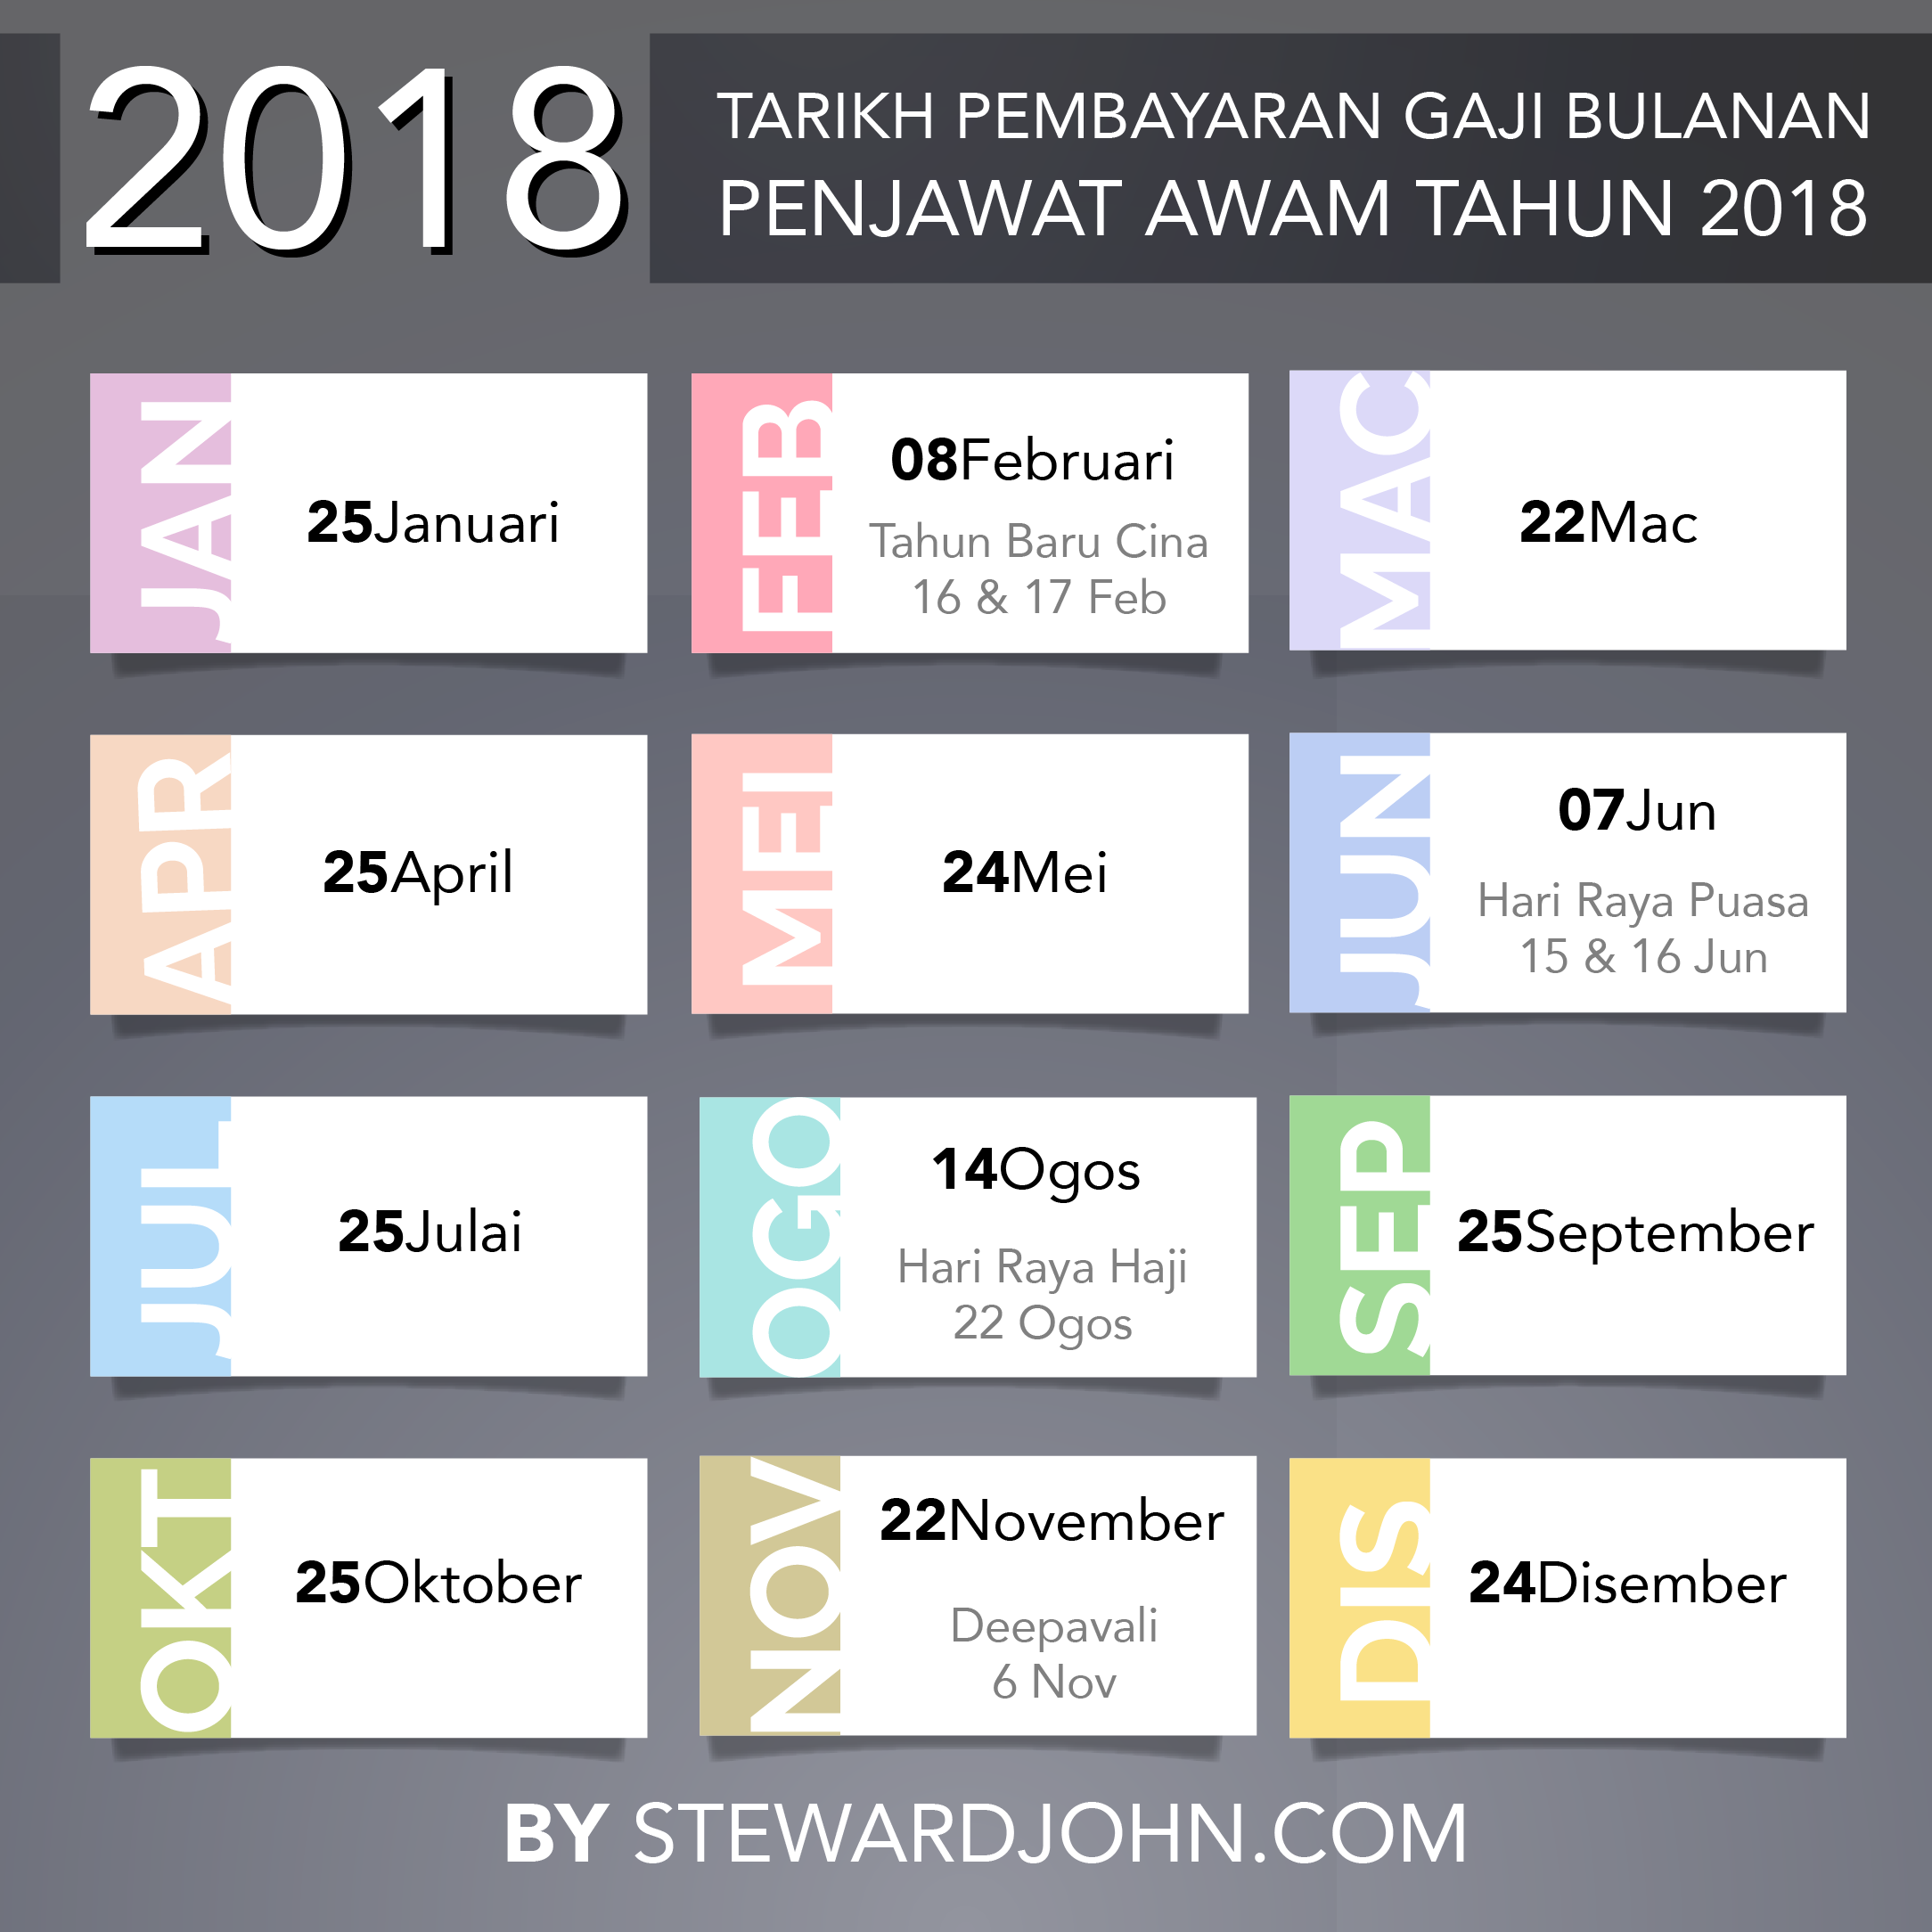 dates were according to calendar posted by accountant generals department of malaysia please refer to their official website for any changes or